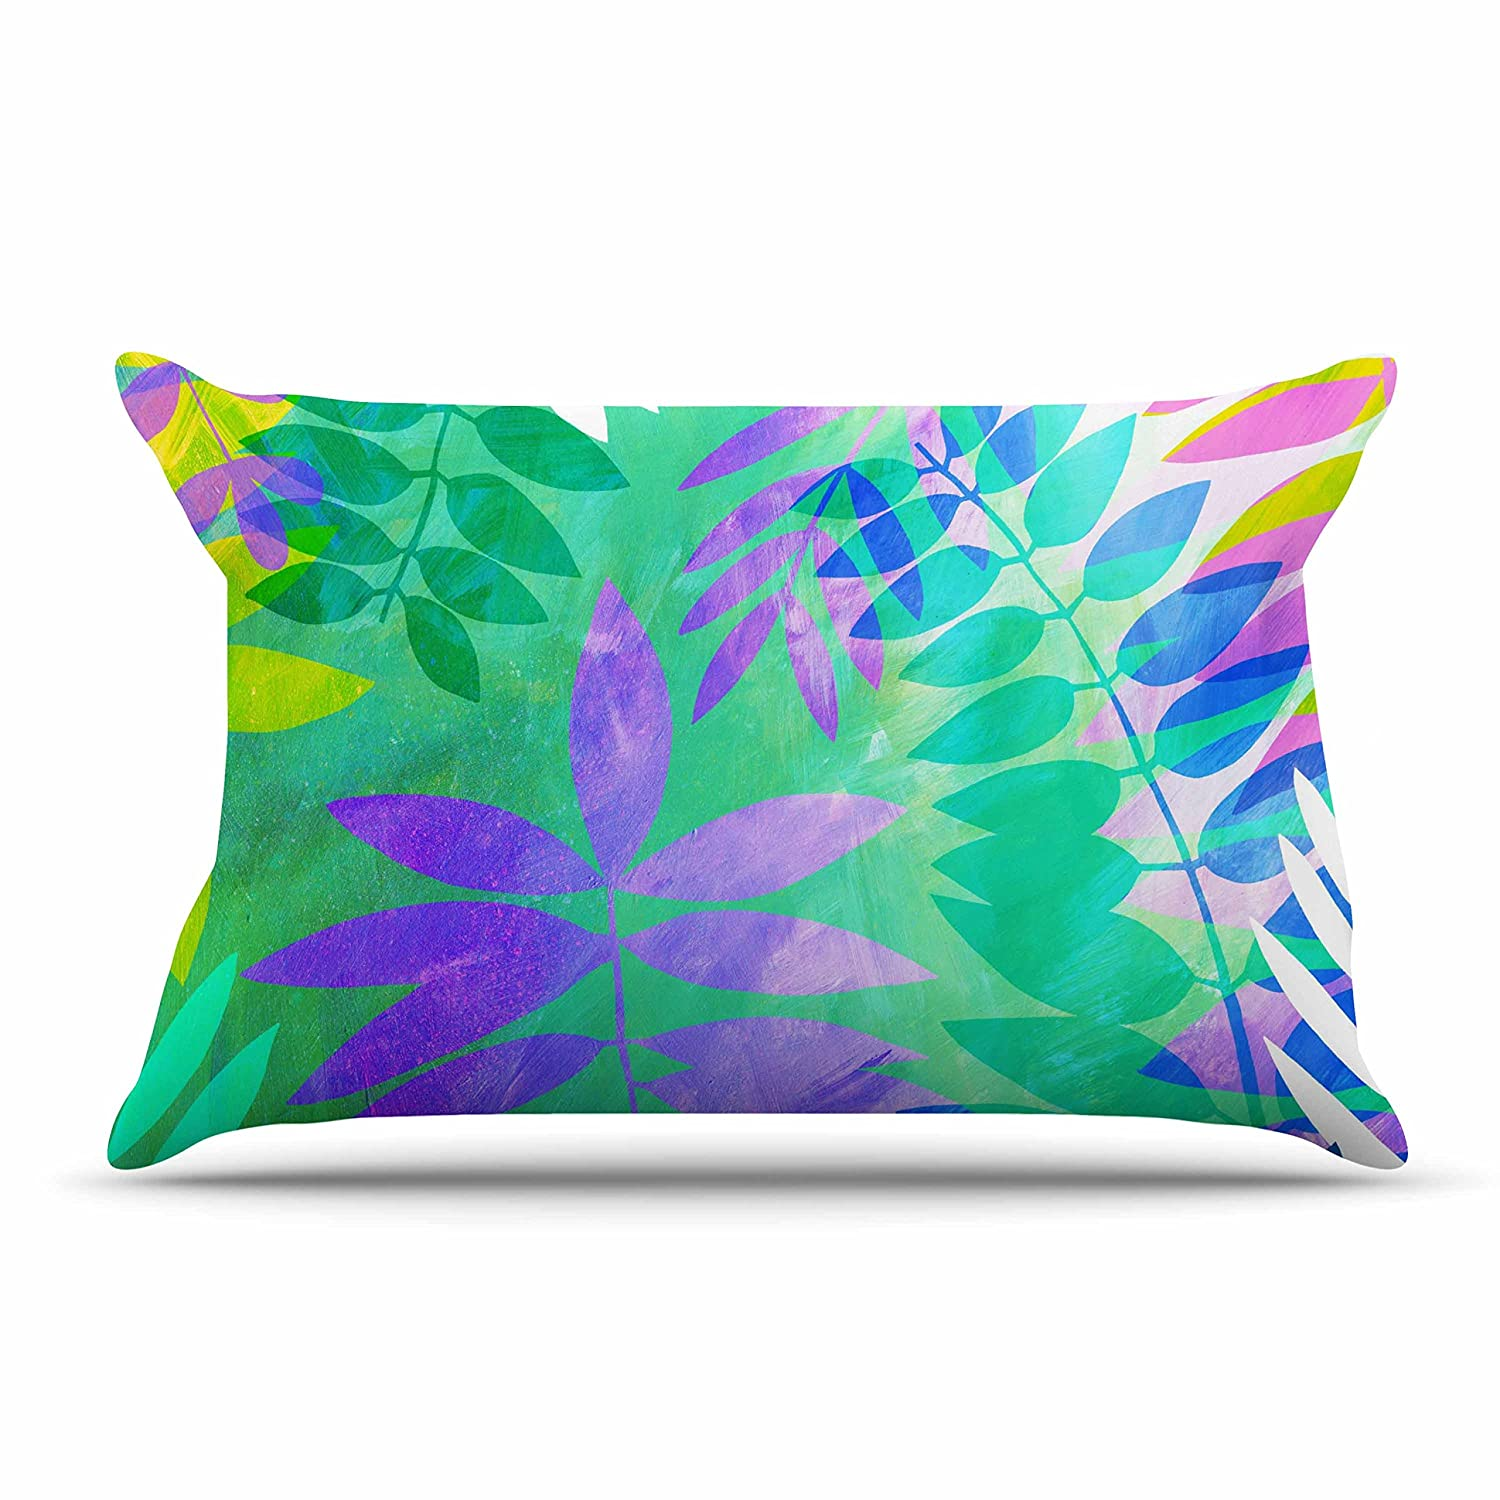 Kess InHouse Jessica Wilde Jungle Teal Purple Standard Pillow Case 30 by 20-Inch 30 X 20